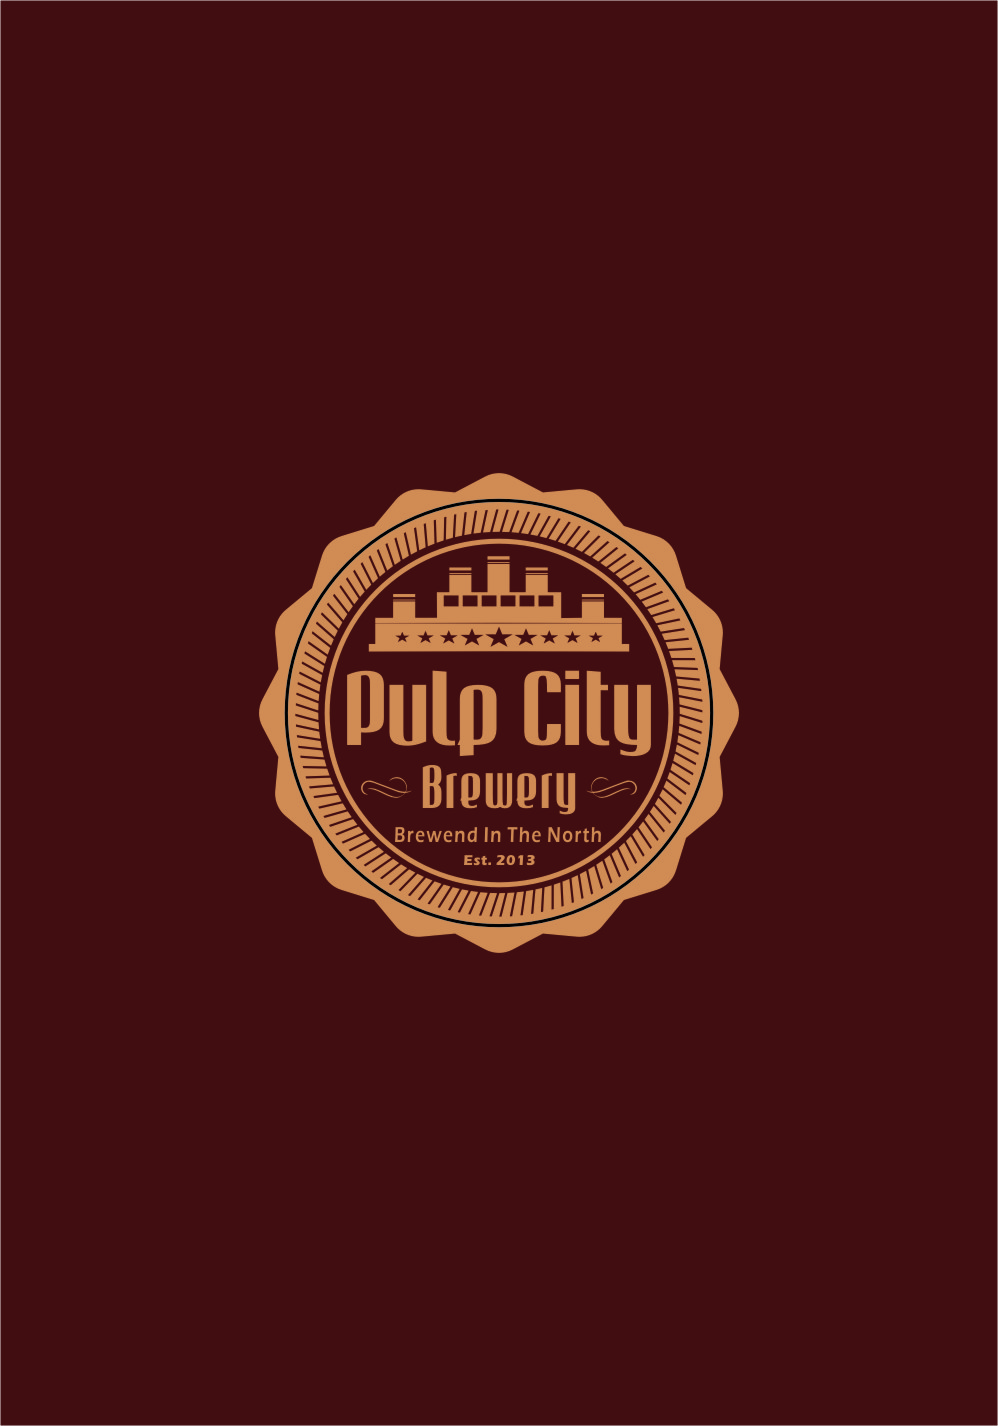 Logo Design by Ngepet_art - Entry No. 104 in the Logo Design Contest Artistic Logo Design for Pulp City Brewery.